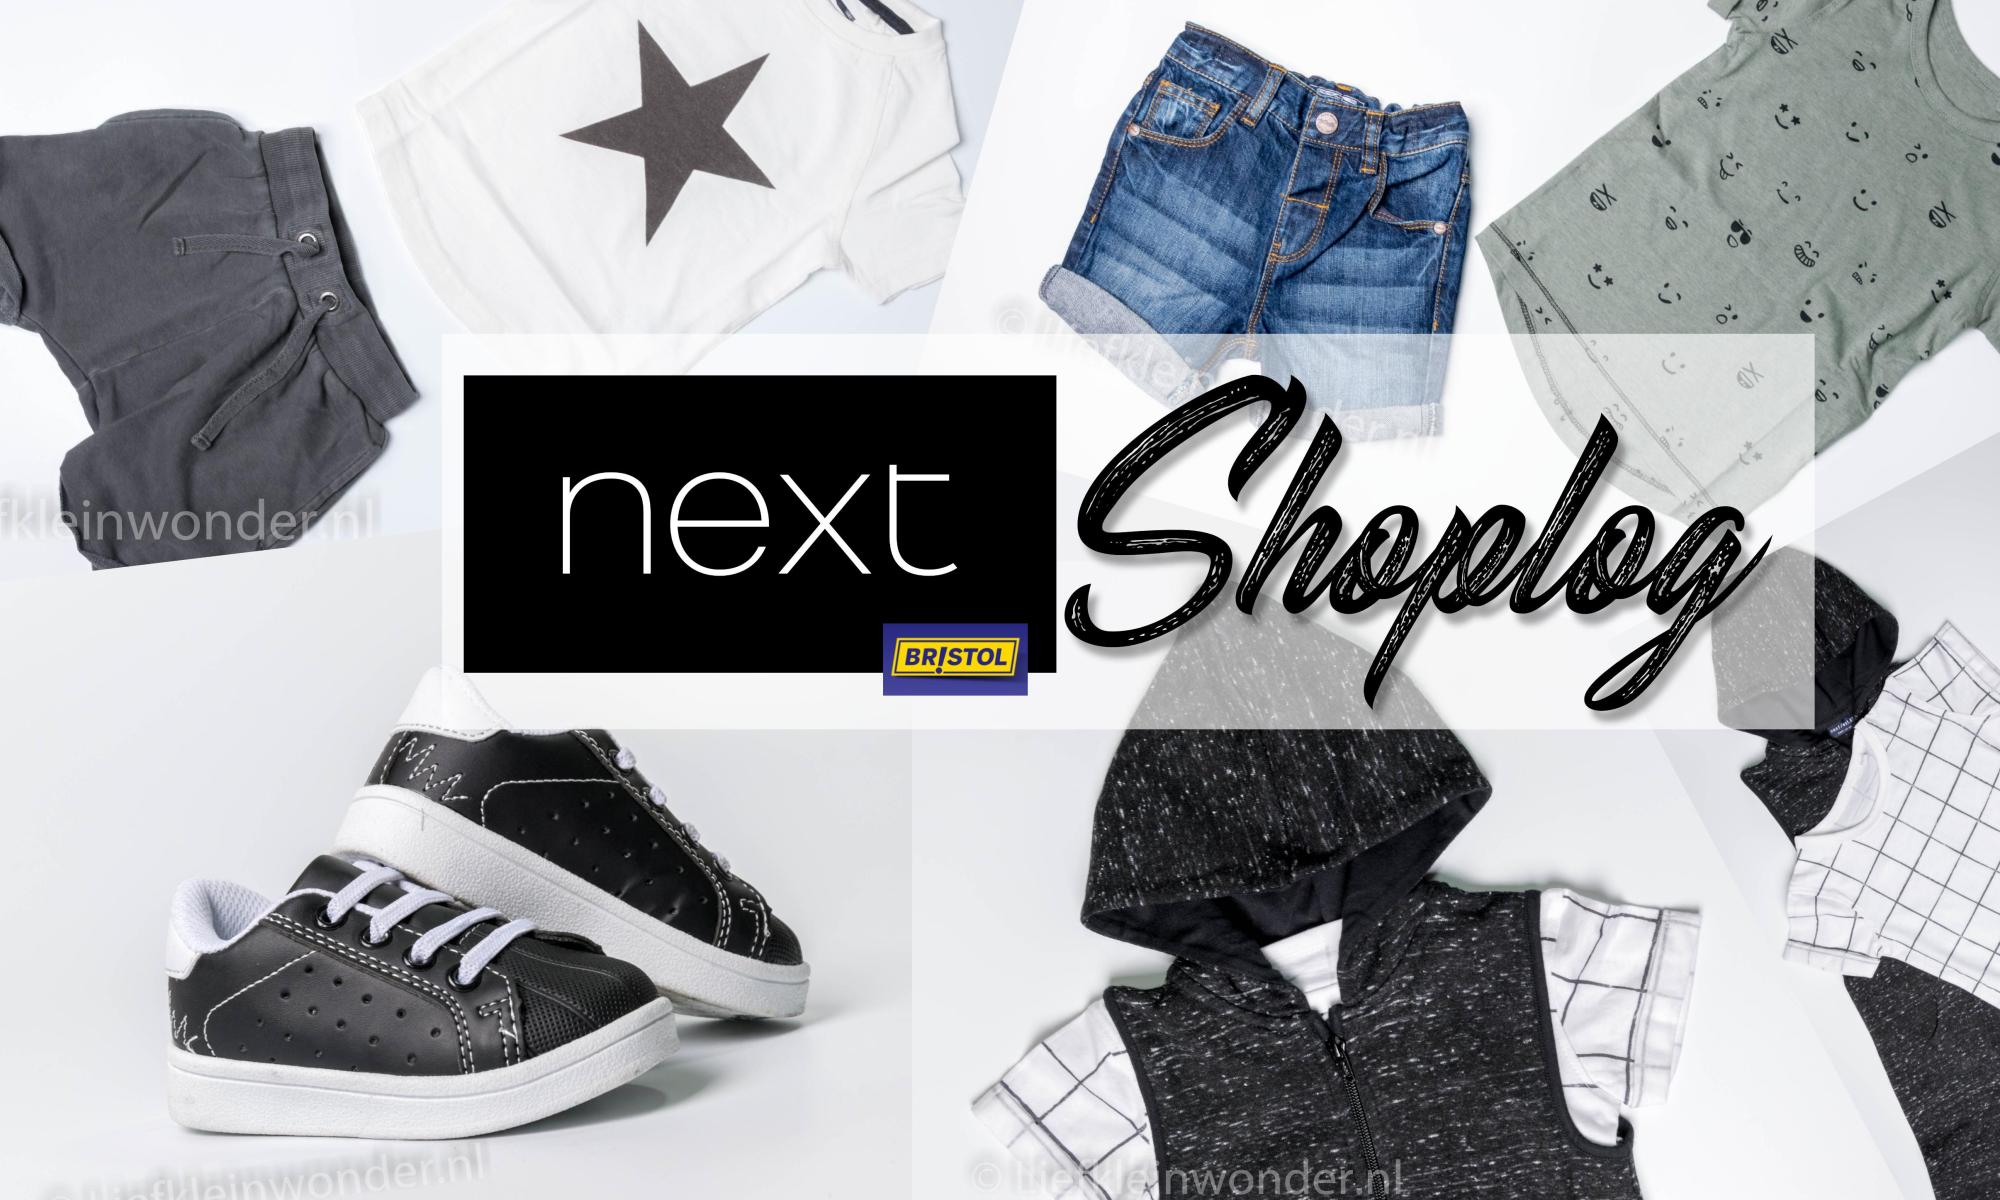 Next direct bristol schoenen shoplog jongens babykleding onesie shorts shirts